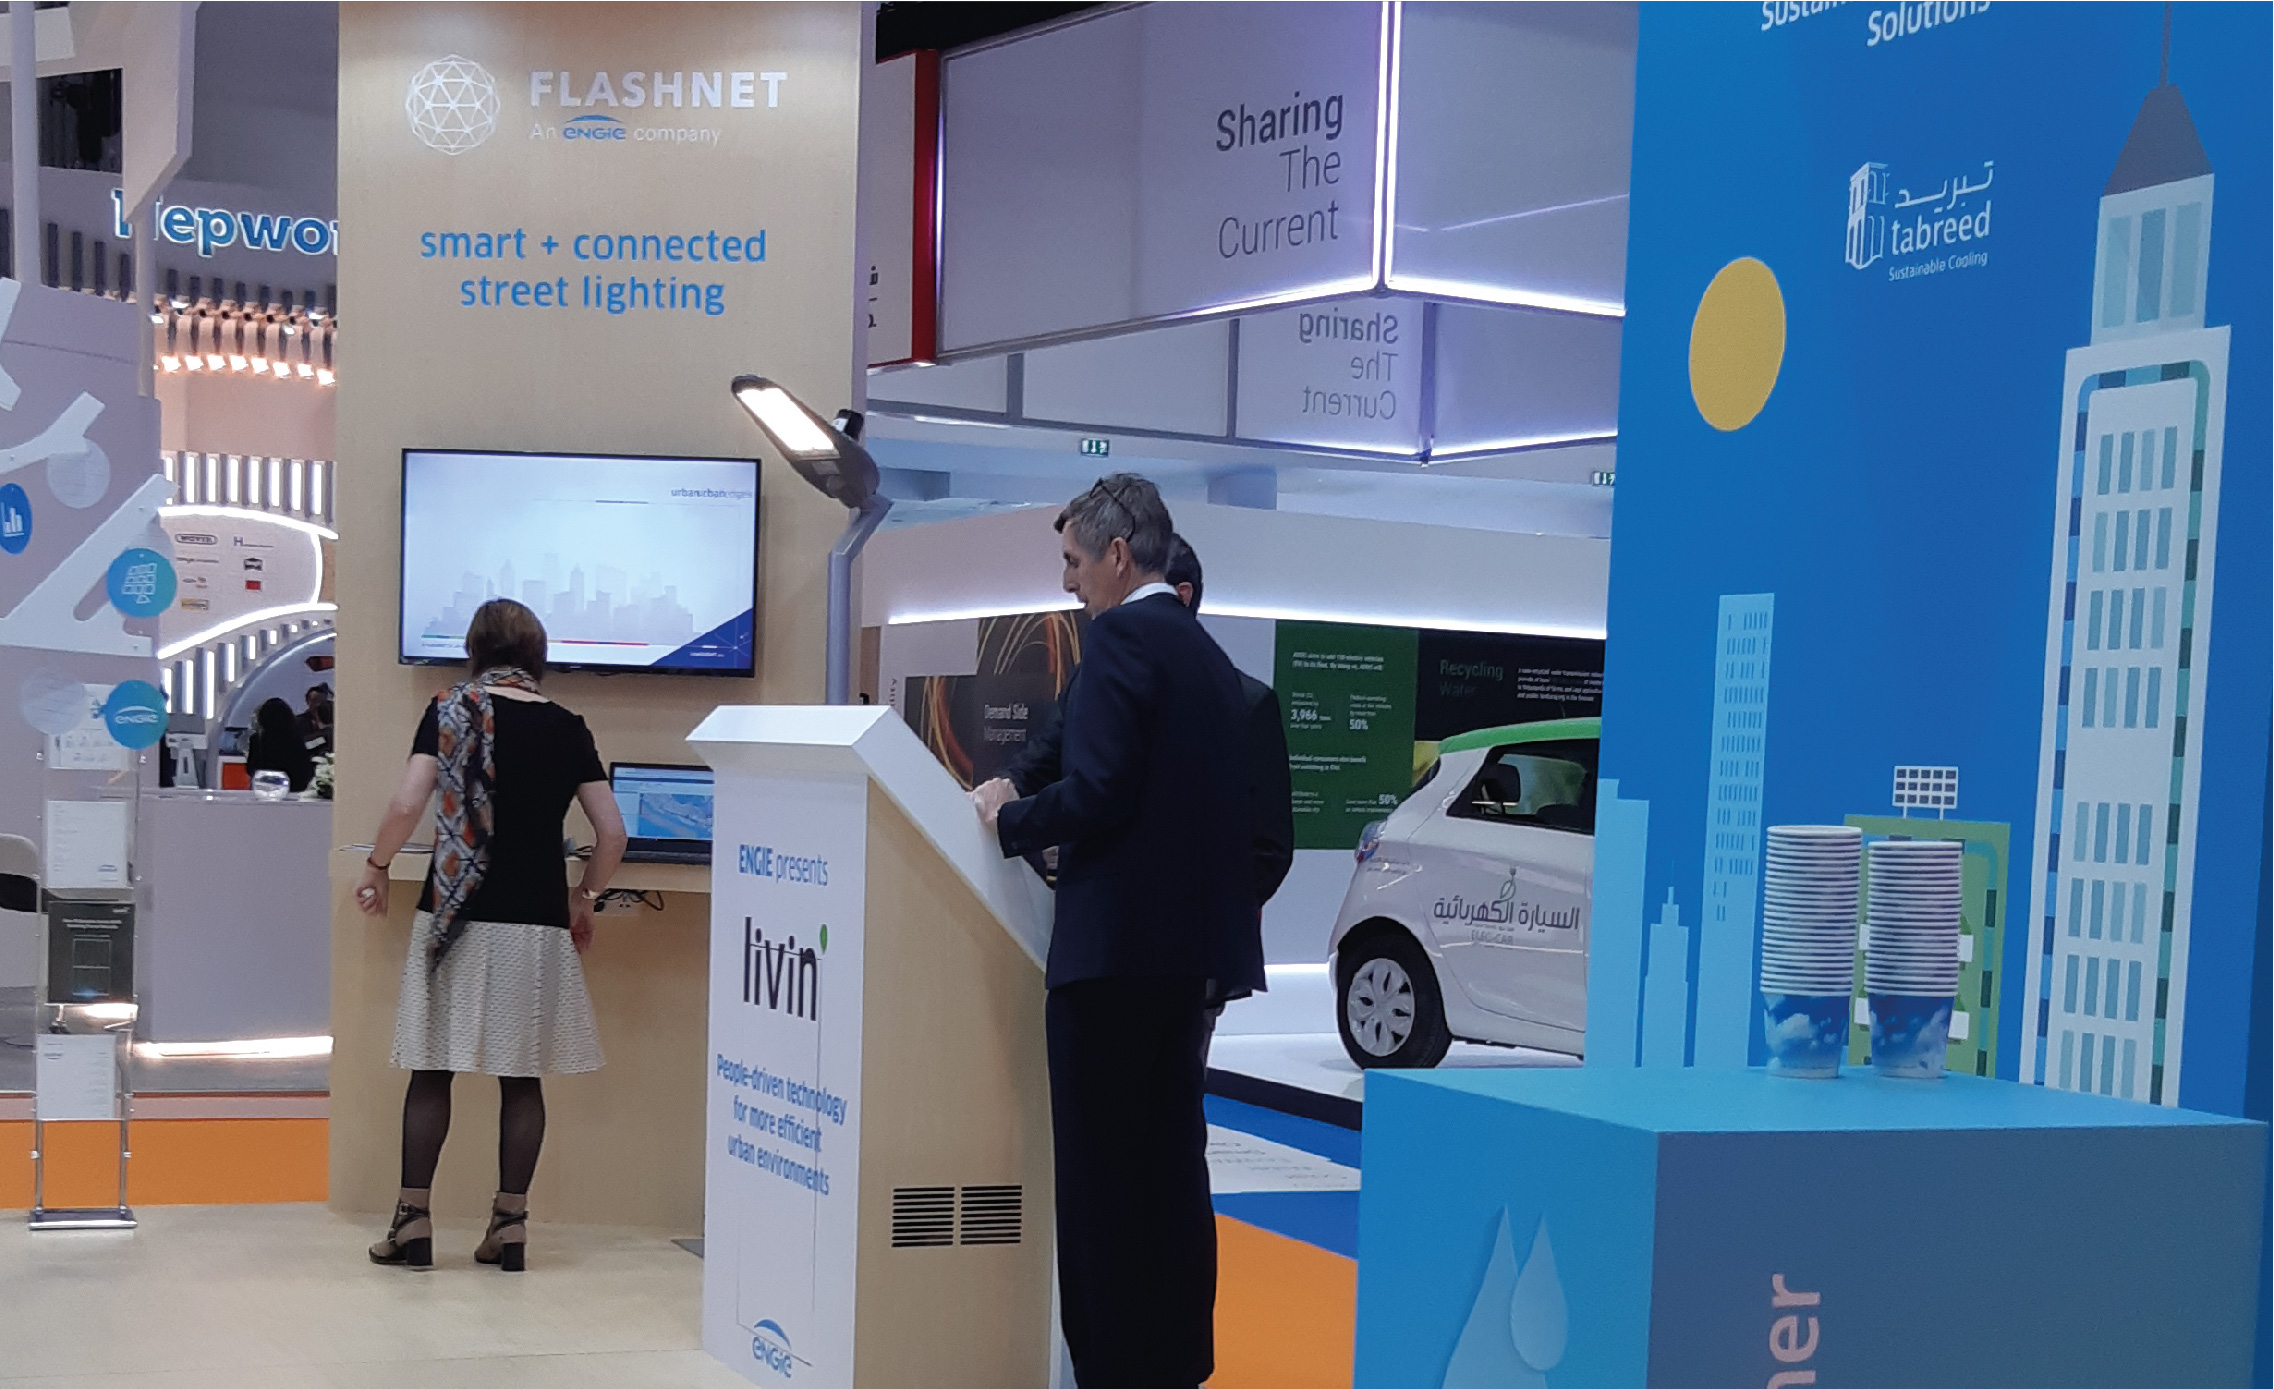 inteliLIGHT's street lighting control, combined with ENGIE's green energy global vision, showcased during World Future Energy Summit